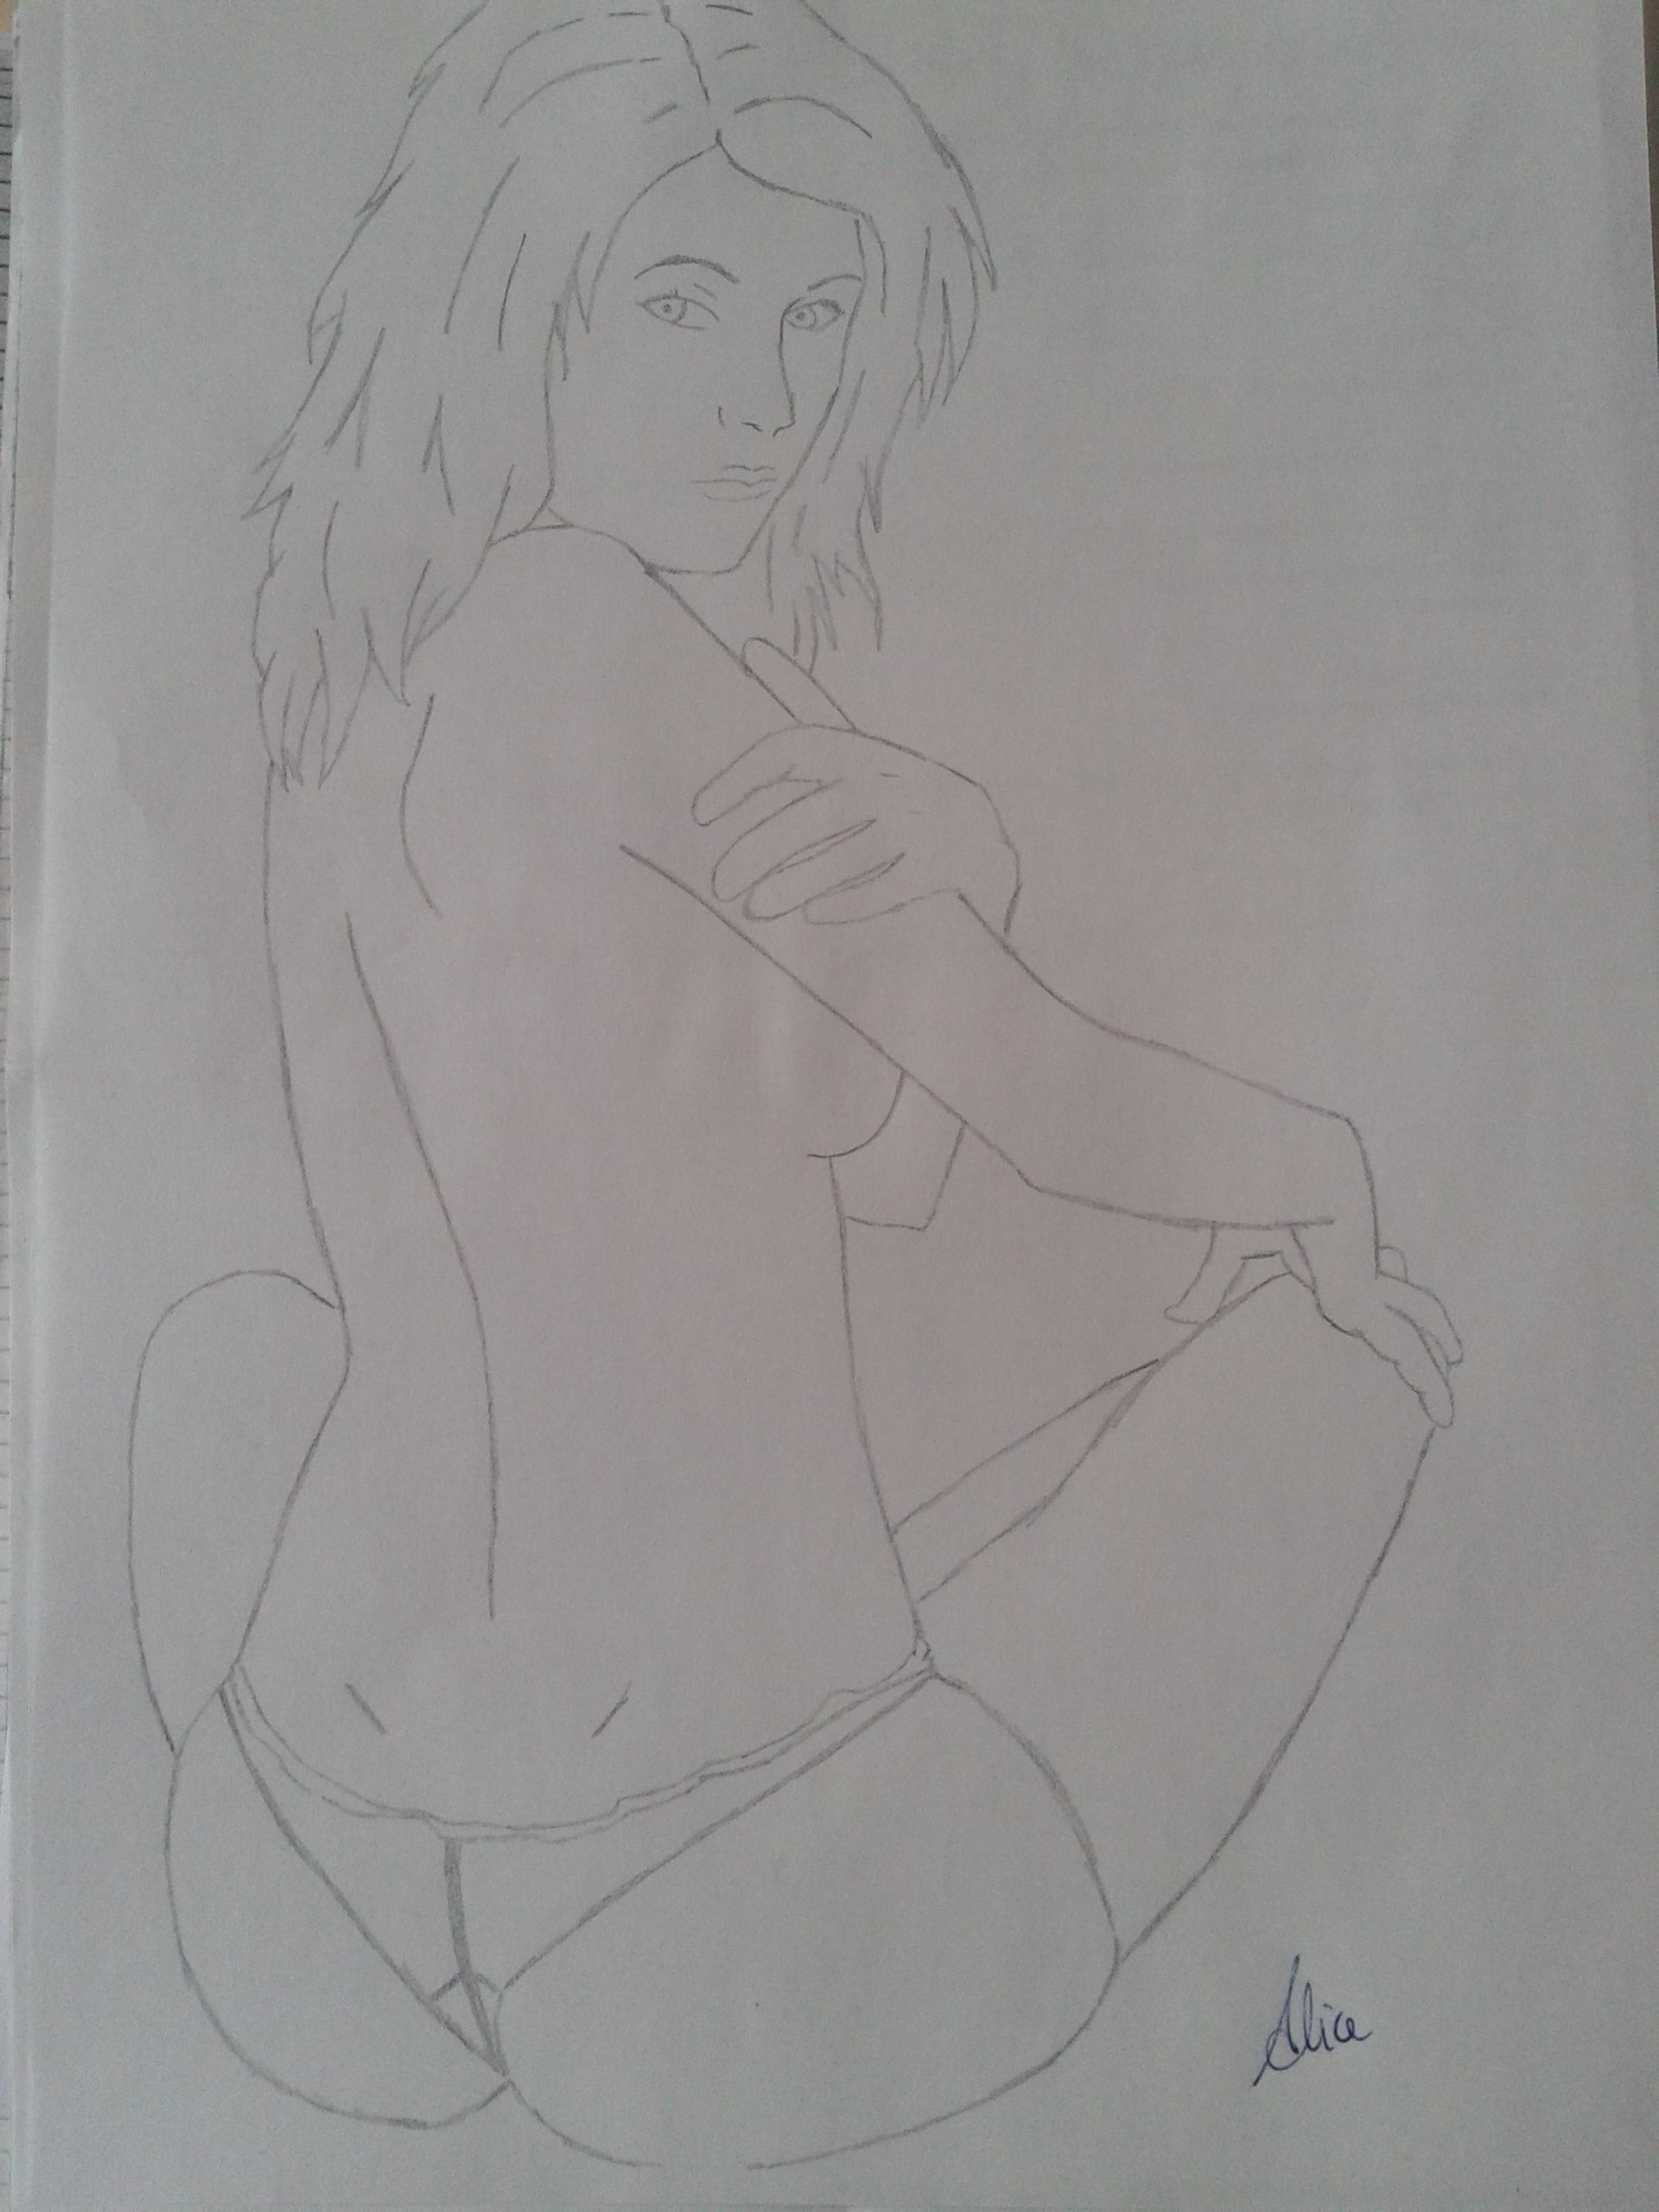 Pencil drawing on wax paper woman sitting half naked woman sitting back with your legs crossed